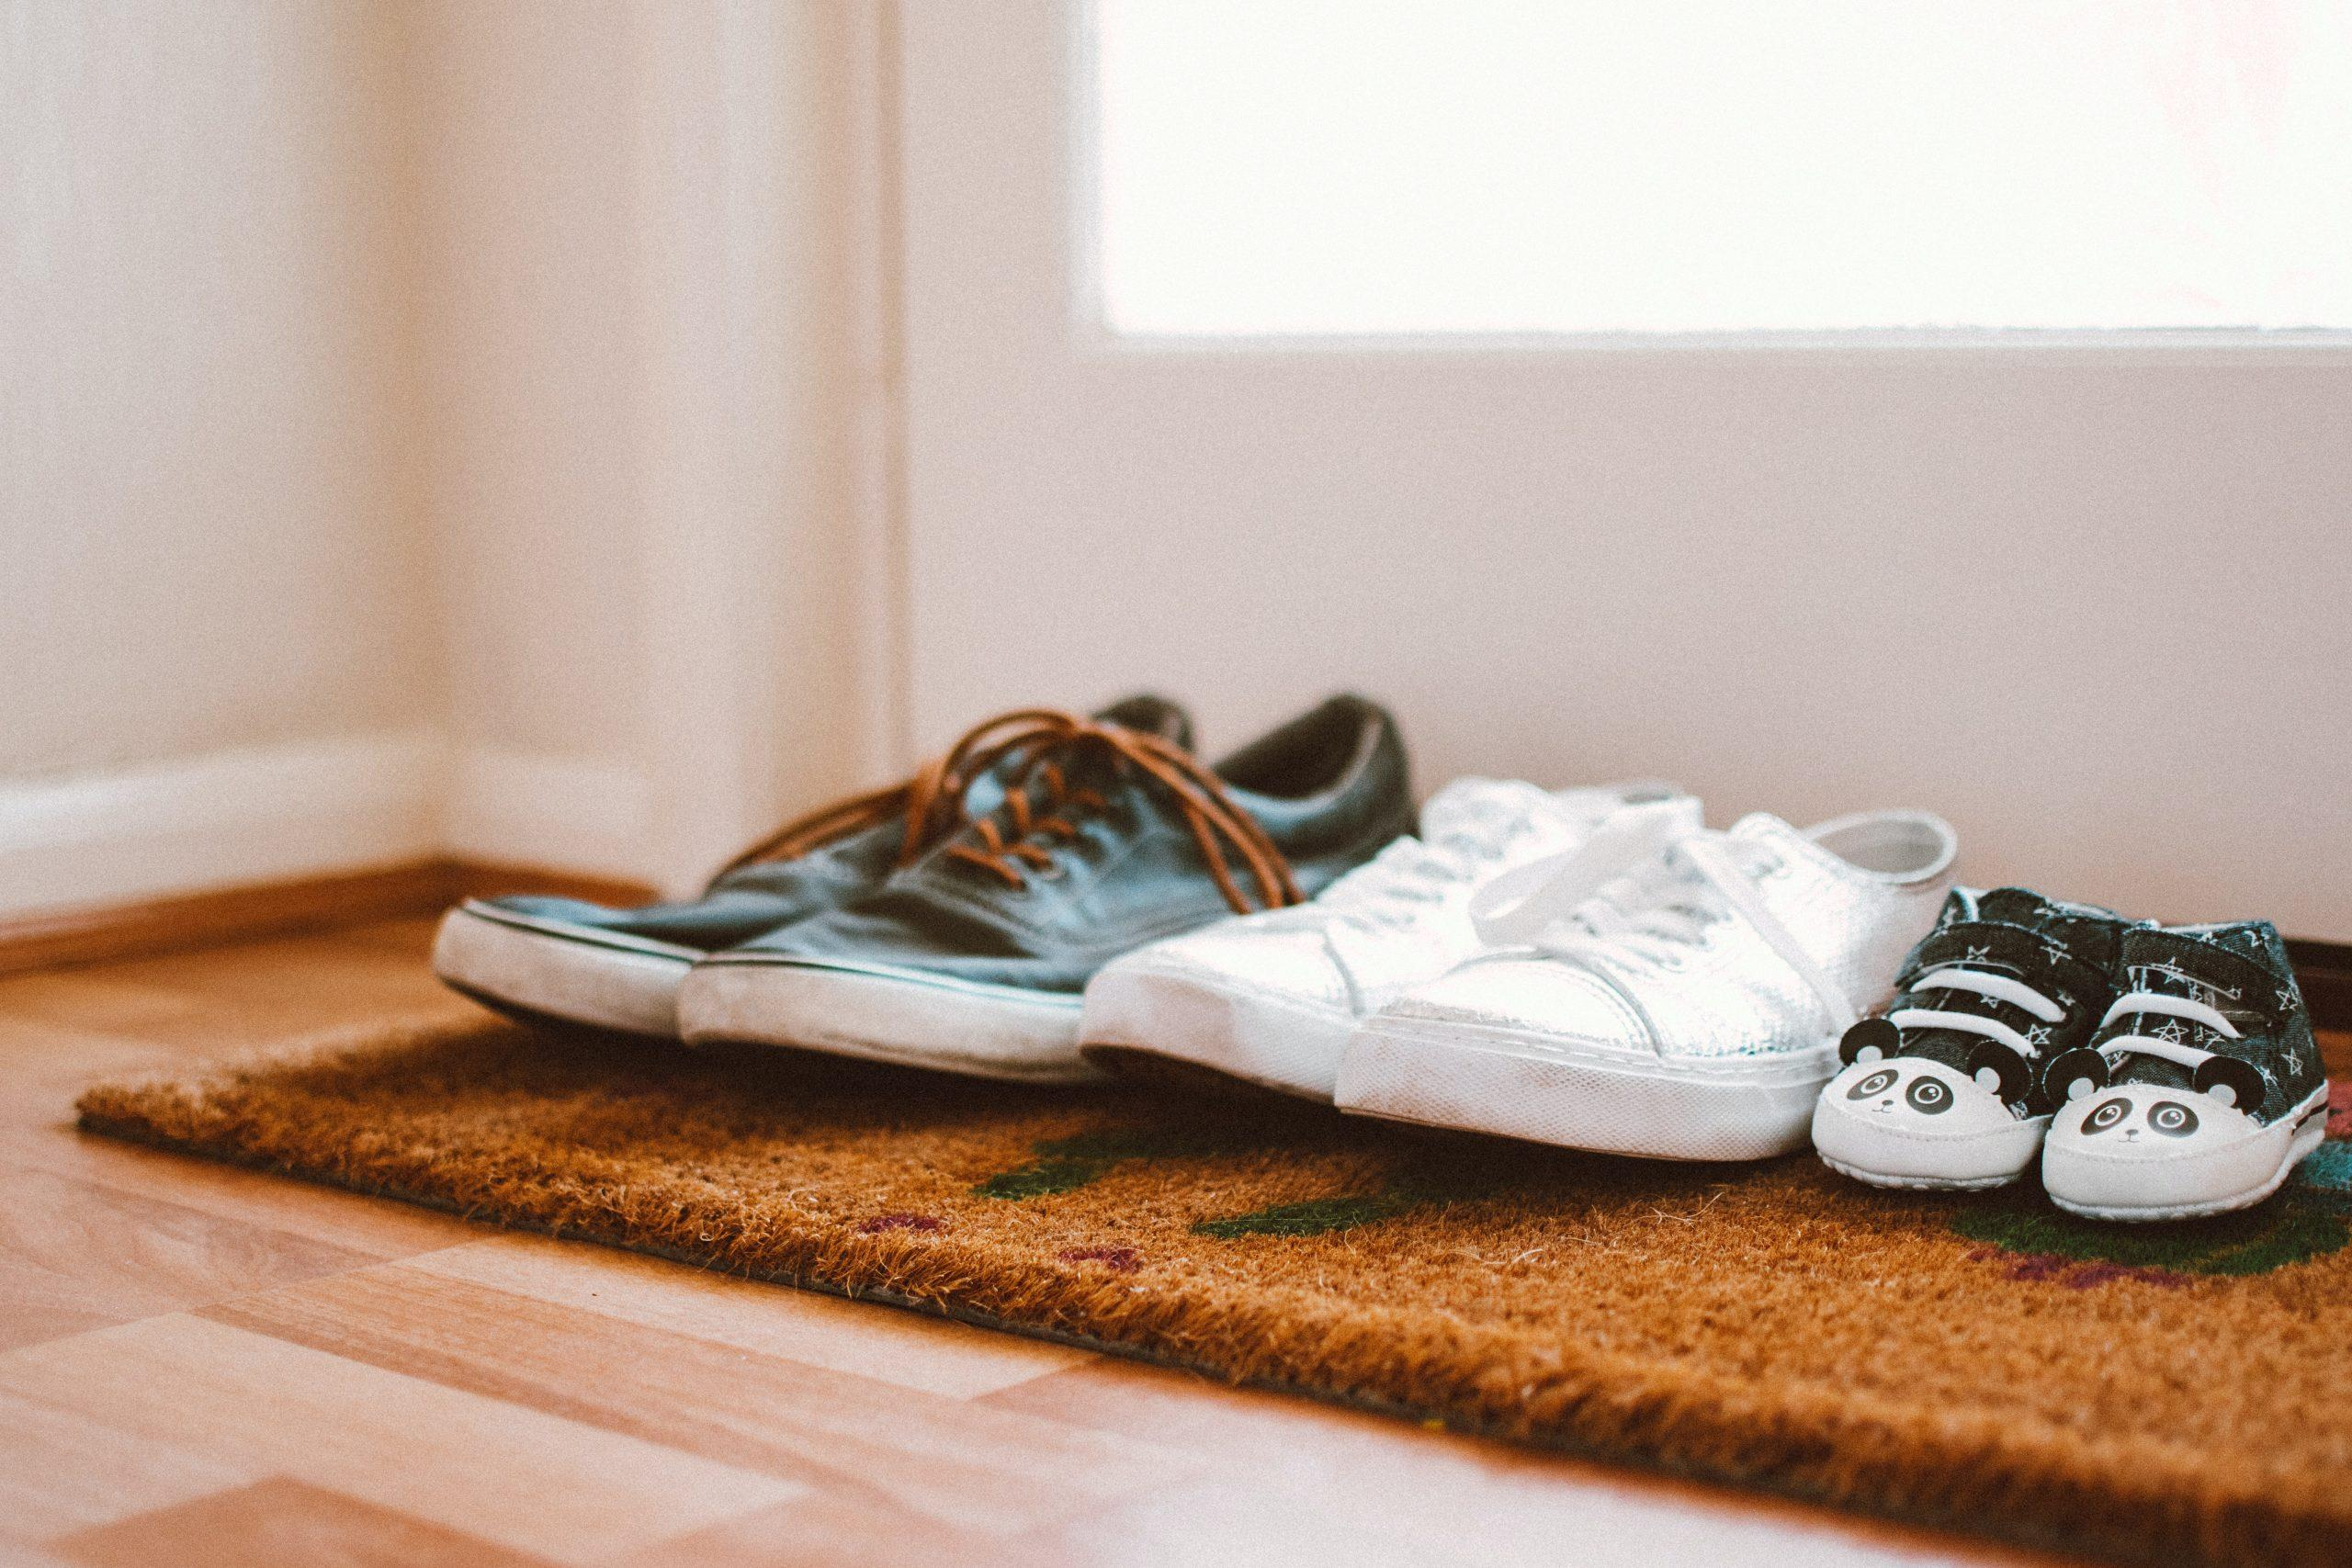 family represented in three pairs of shoes, going from adult to child